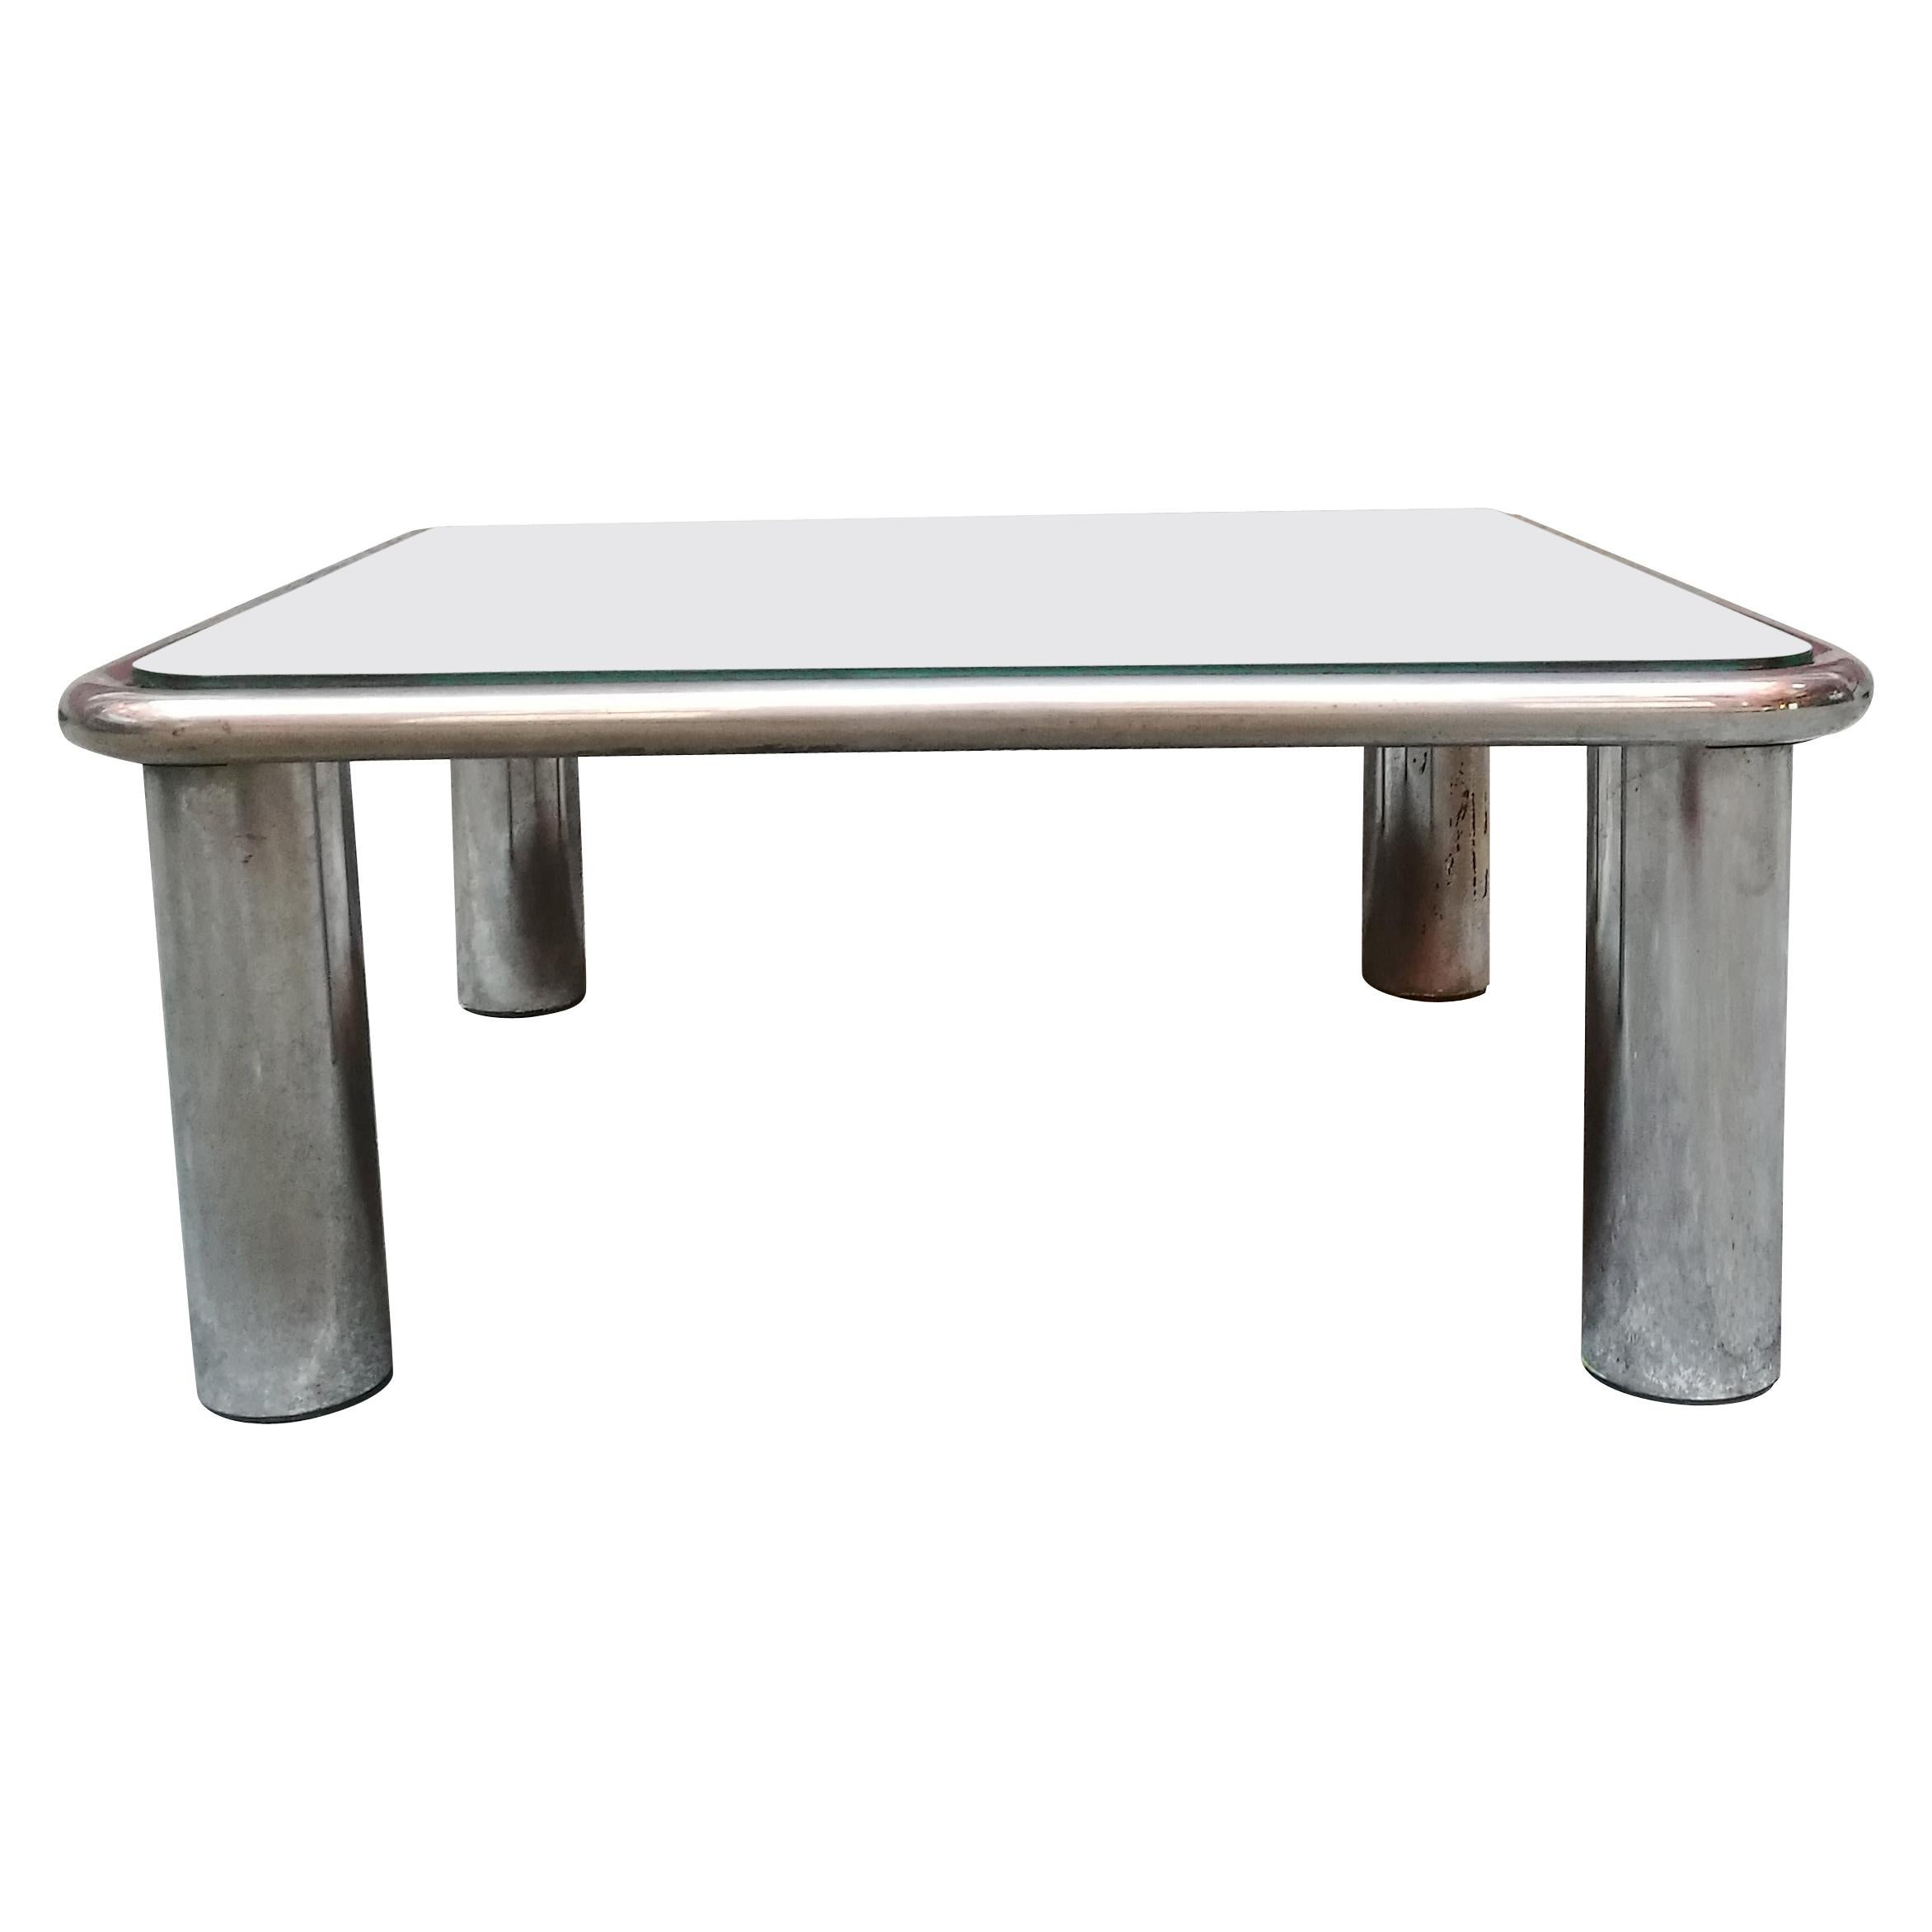 Squared Coffee Table Sesann by Gianfranco Frattini for Cassina, 1968